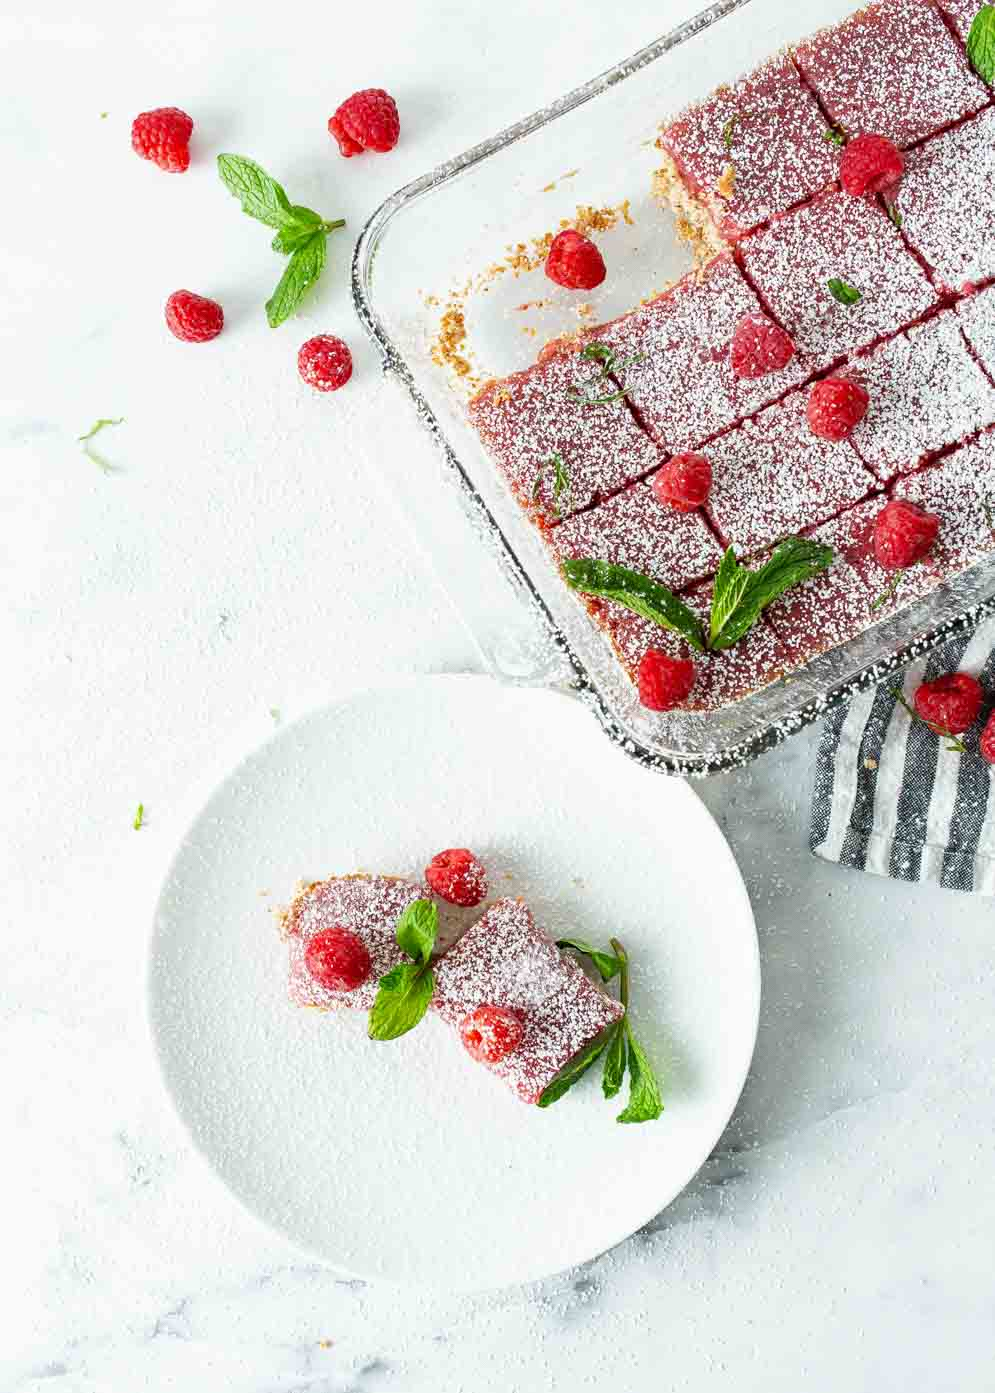 Overheat shot of pan of vegan raspberry bars and a small white plate in lower left corner with two bars all decorated with fresh raspberries